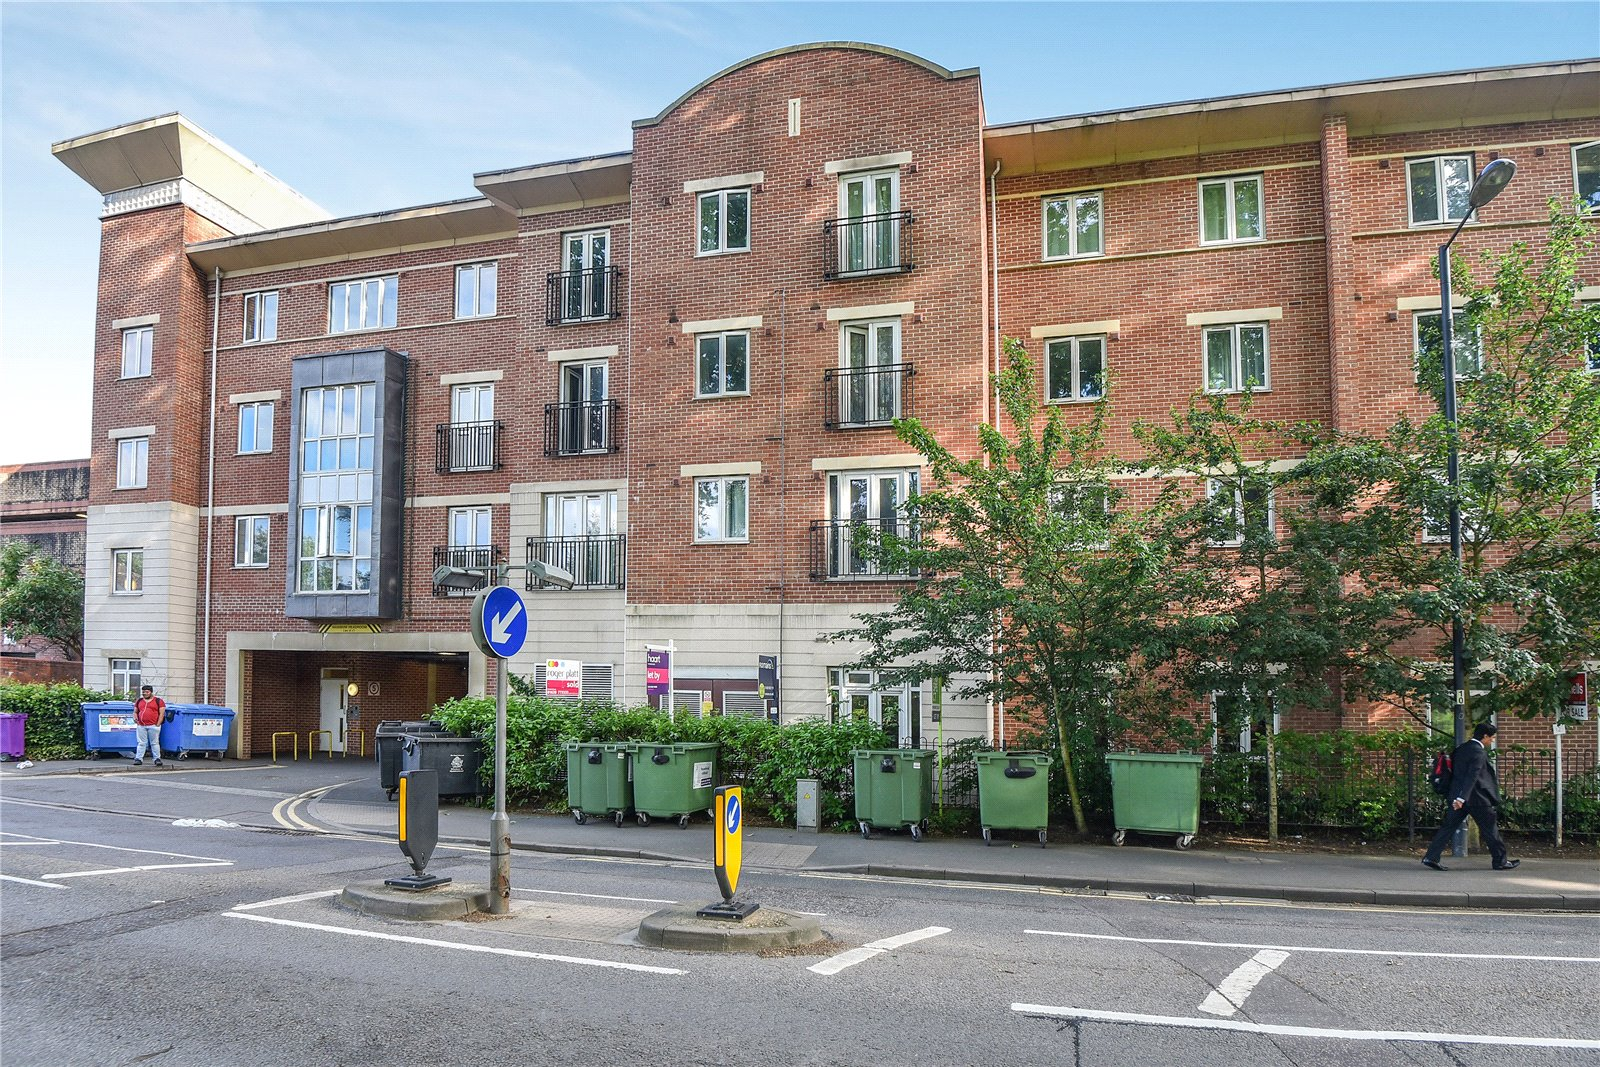 2 Bedrooms Apartment Flat for sale in Park View, Grenfell Road, Maidenhead, Berkshire, SL6